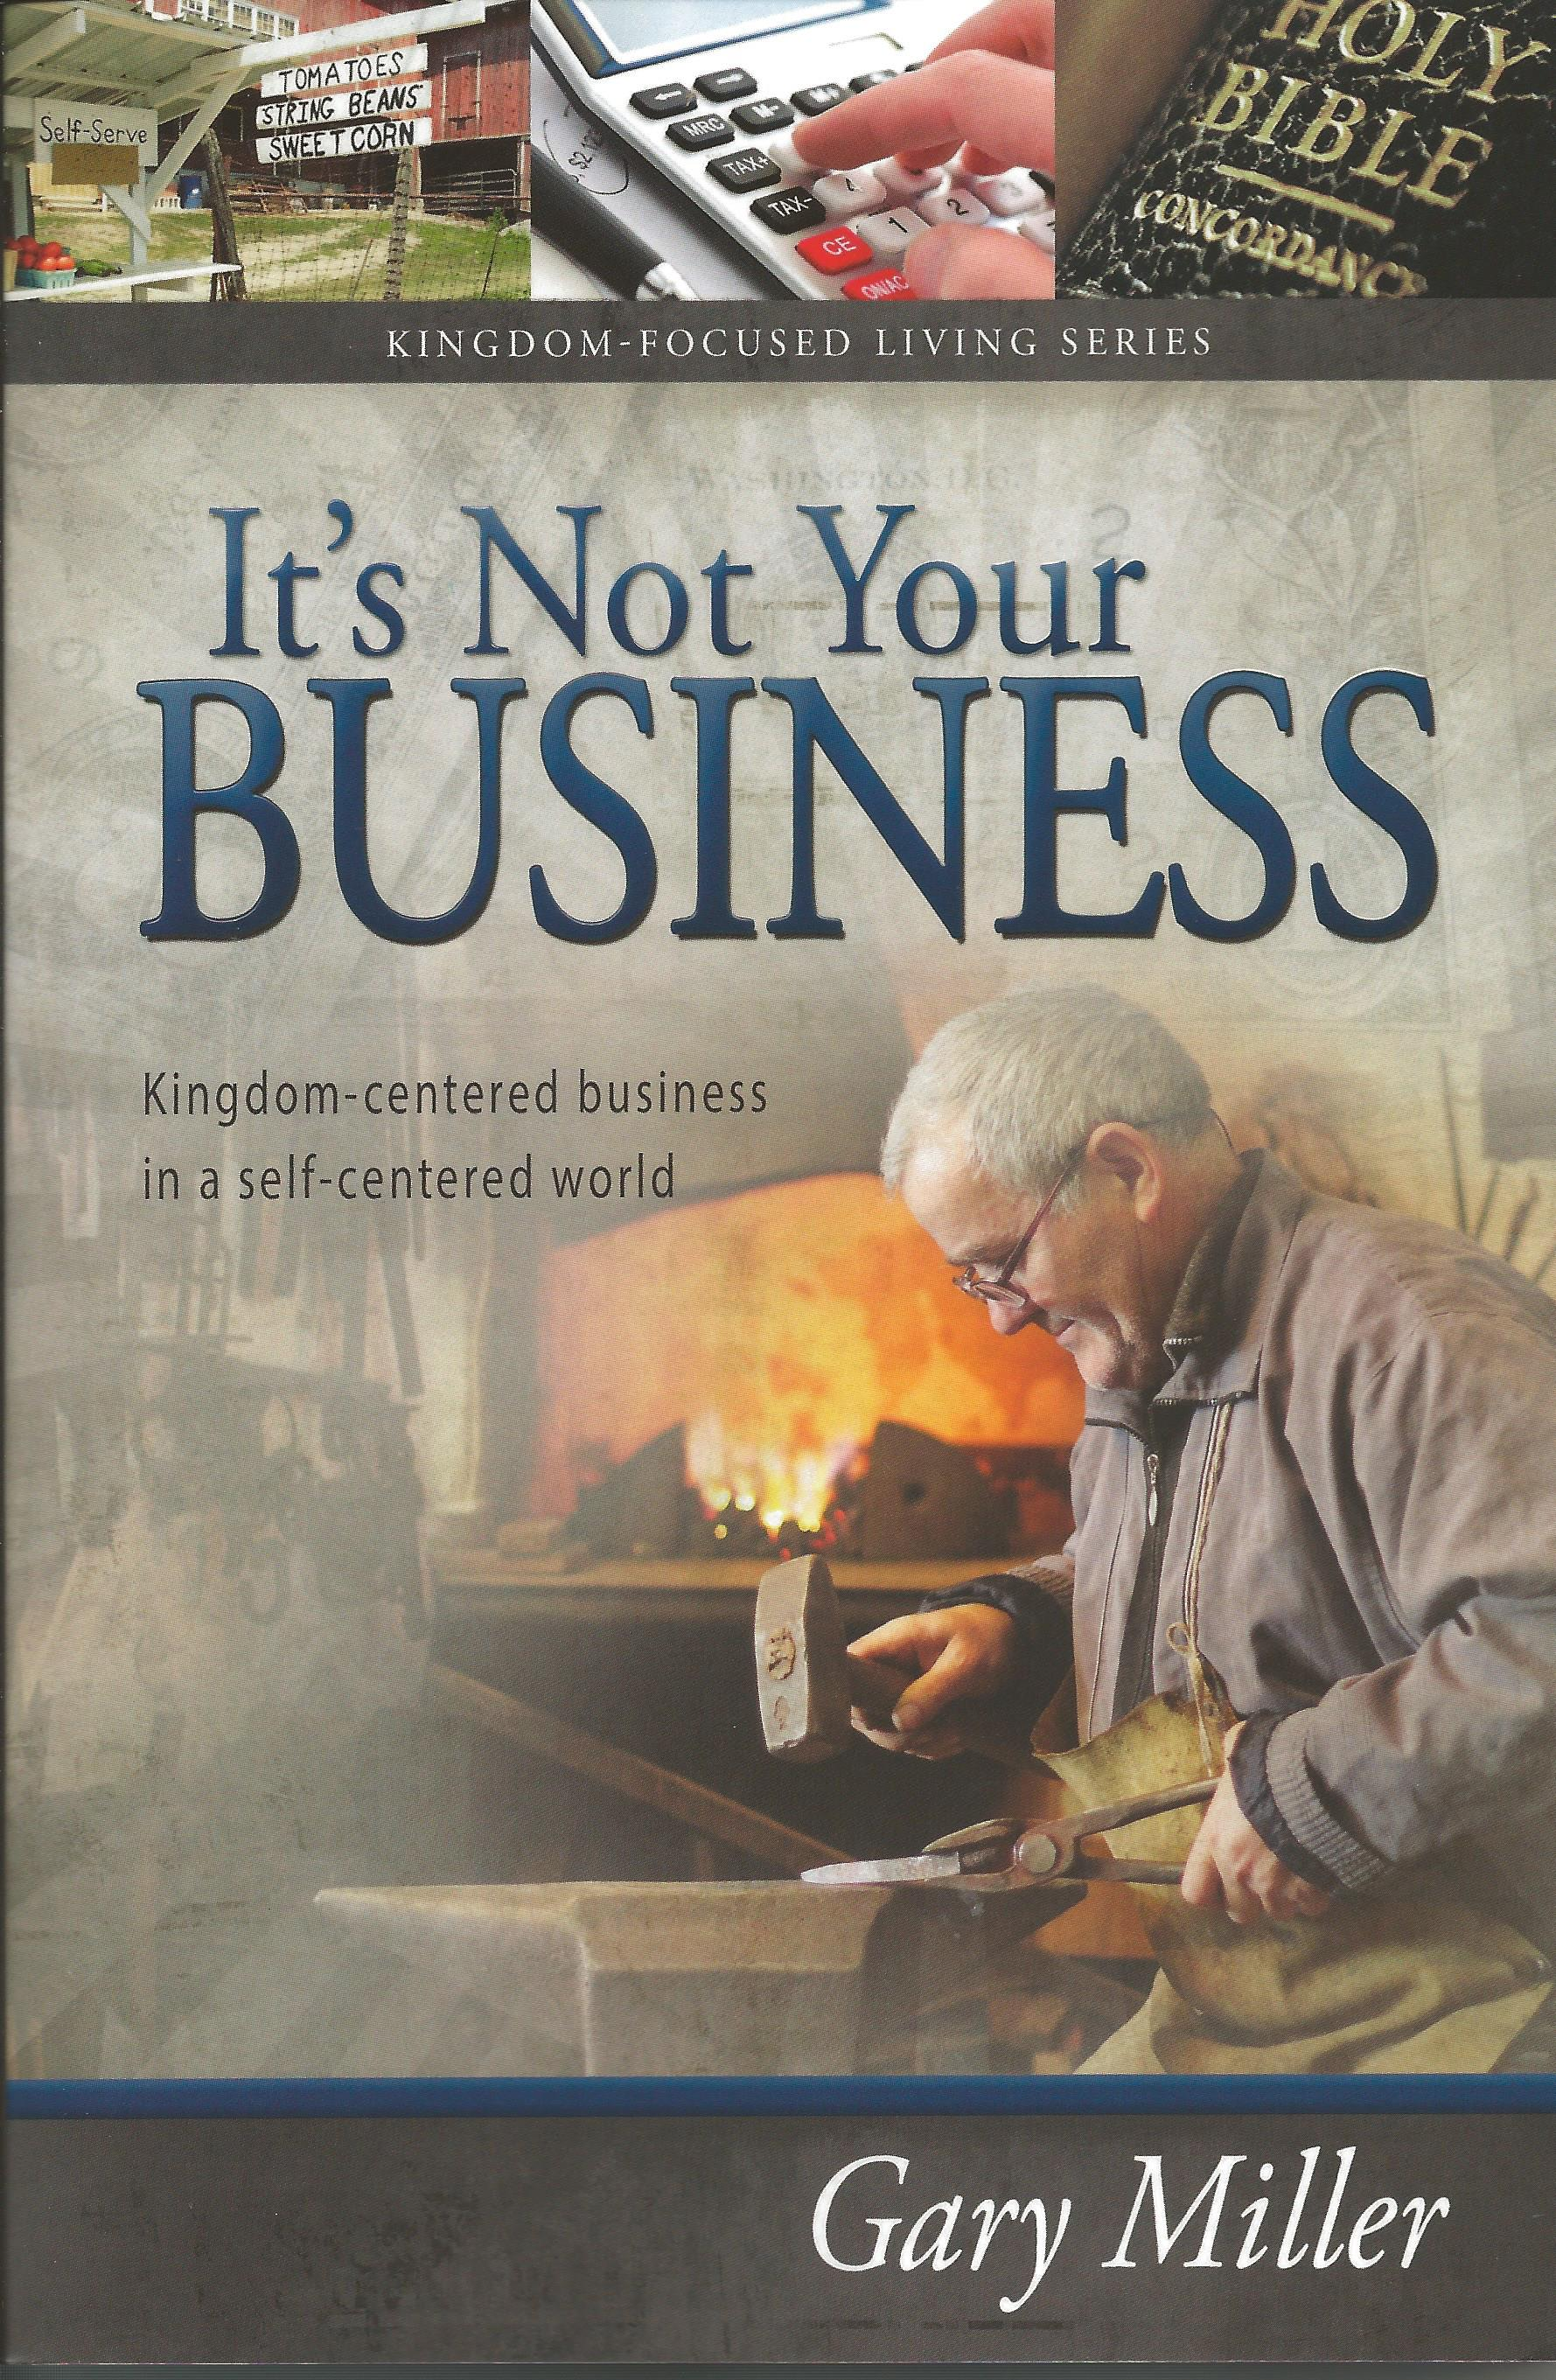 IT'S NOT YOUR BUSINESS Gary Miller